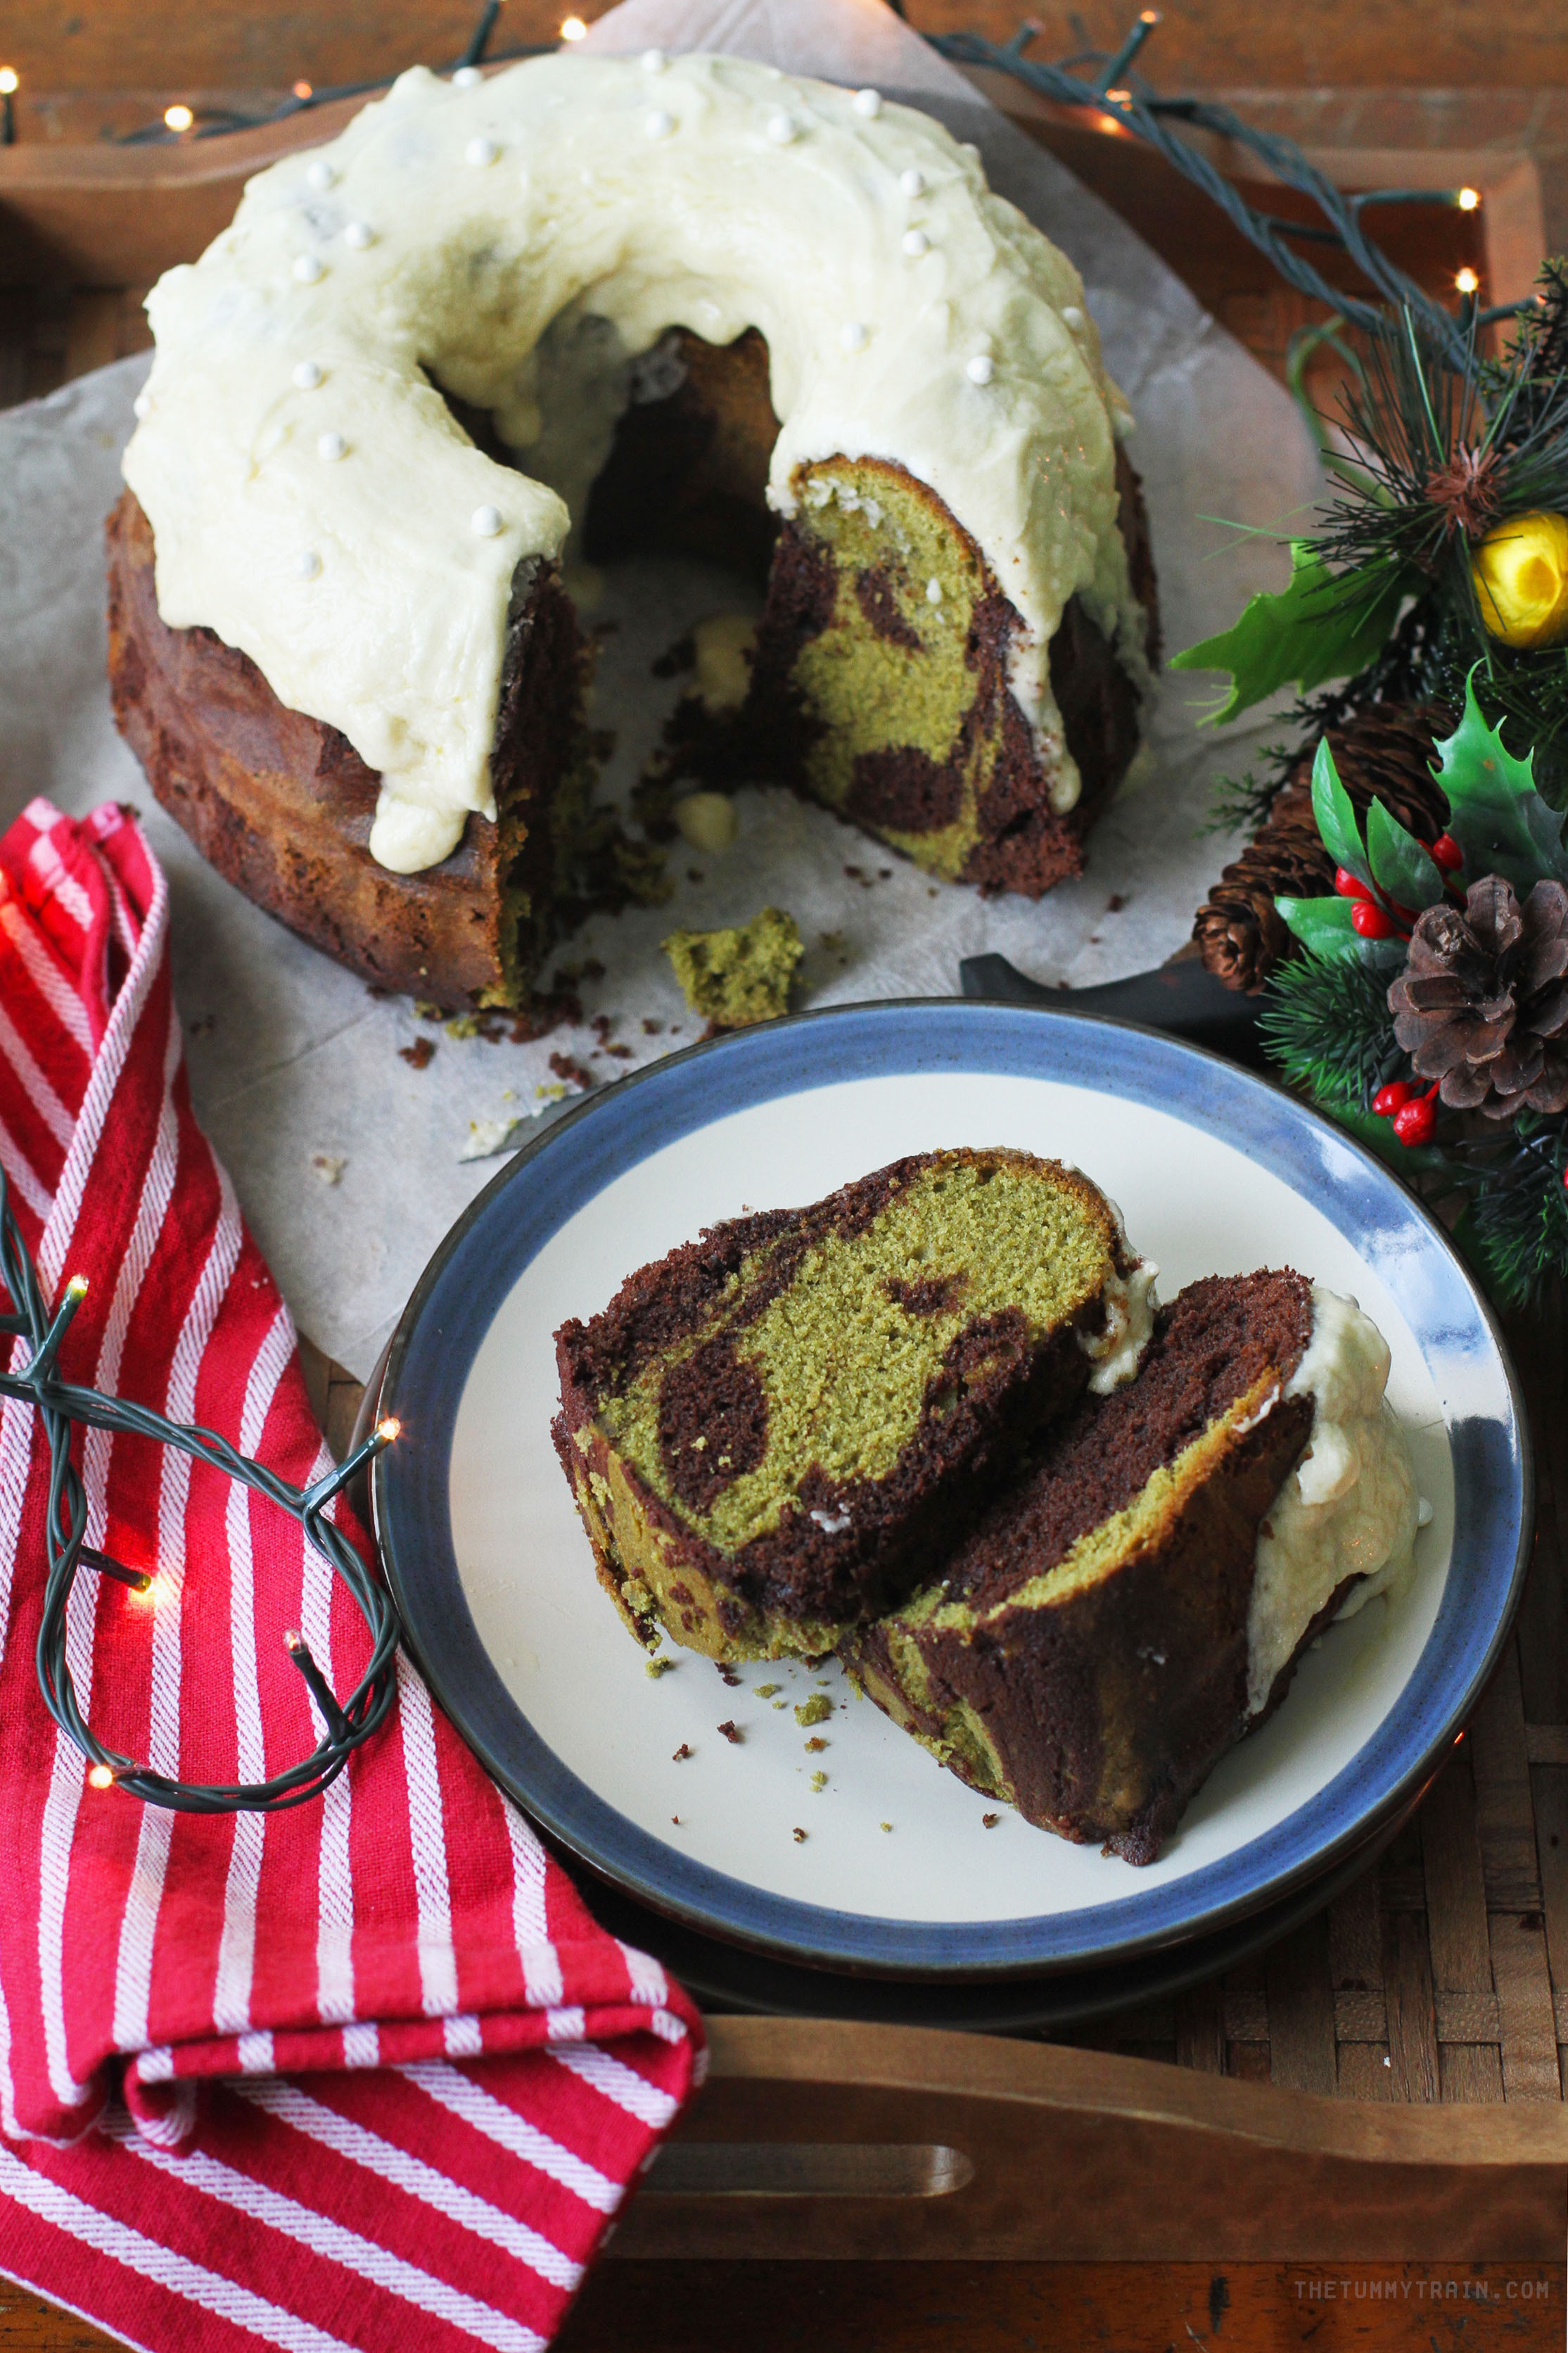 Matcha Choco Bundt 1 - Get in the mood for Christmas with this Chocolate Matcha Bundt Cake Recipe